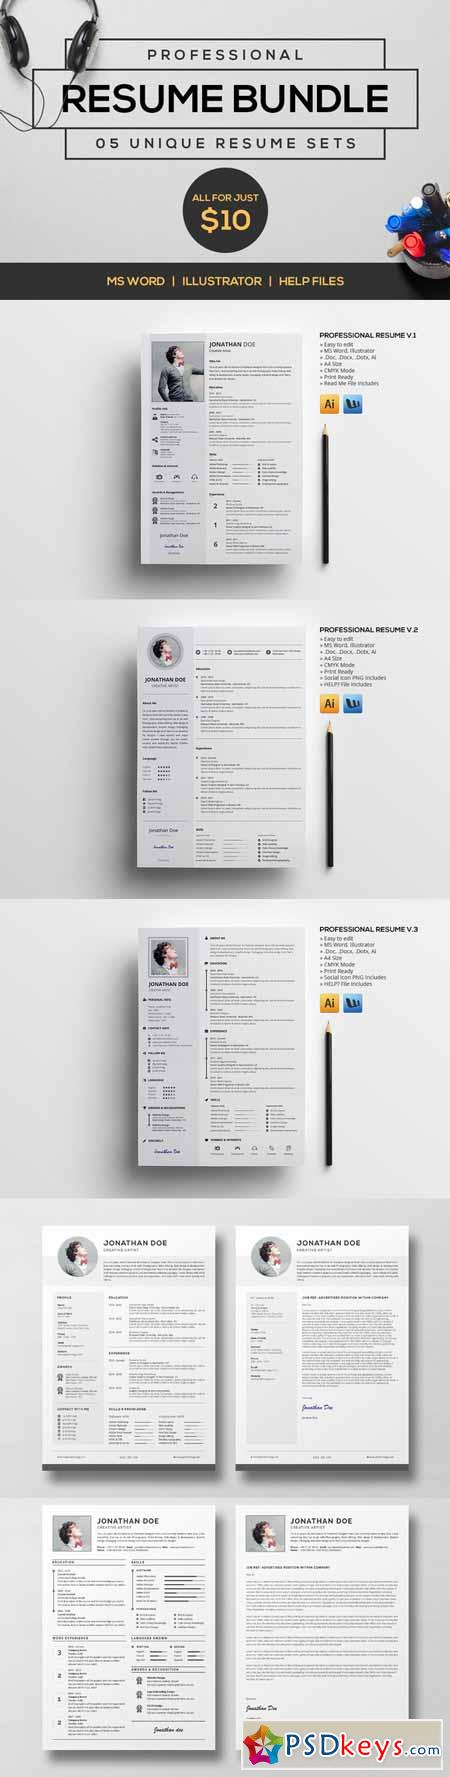 Professional resume bundle v1 479933